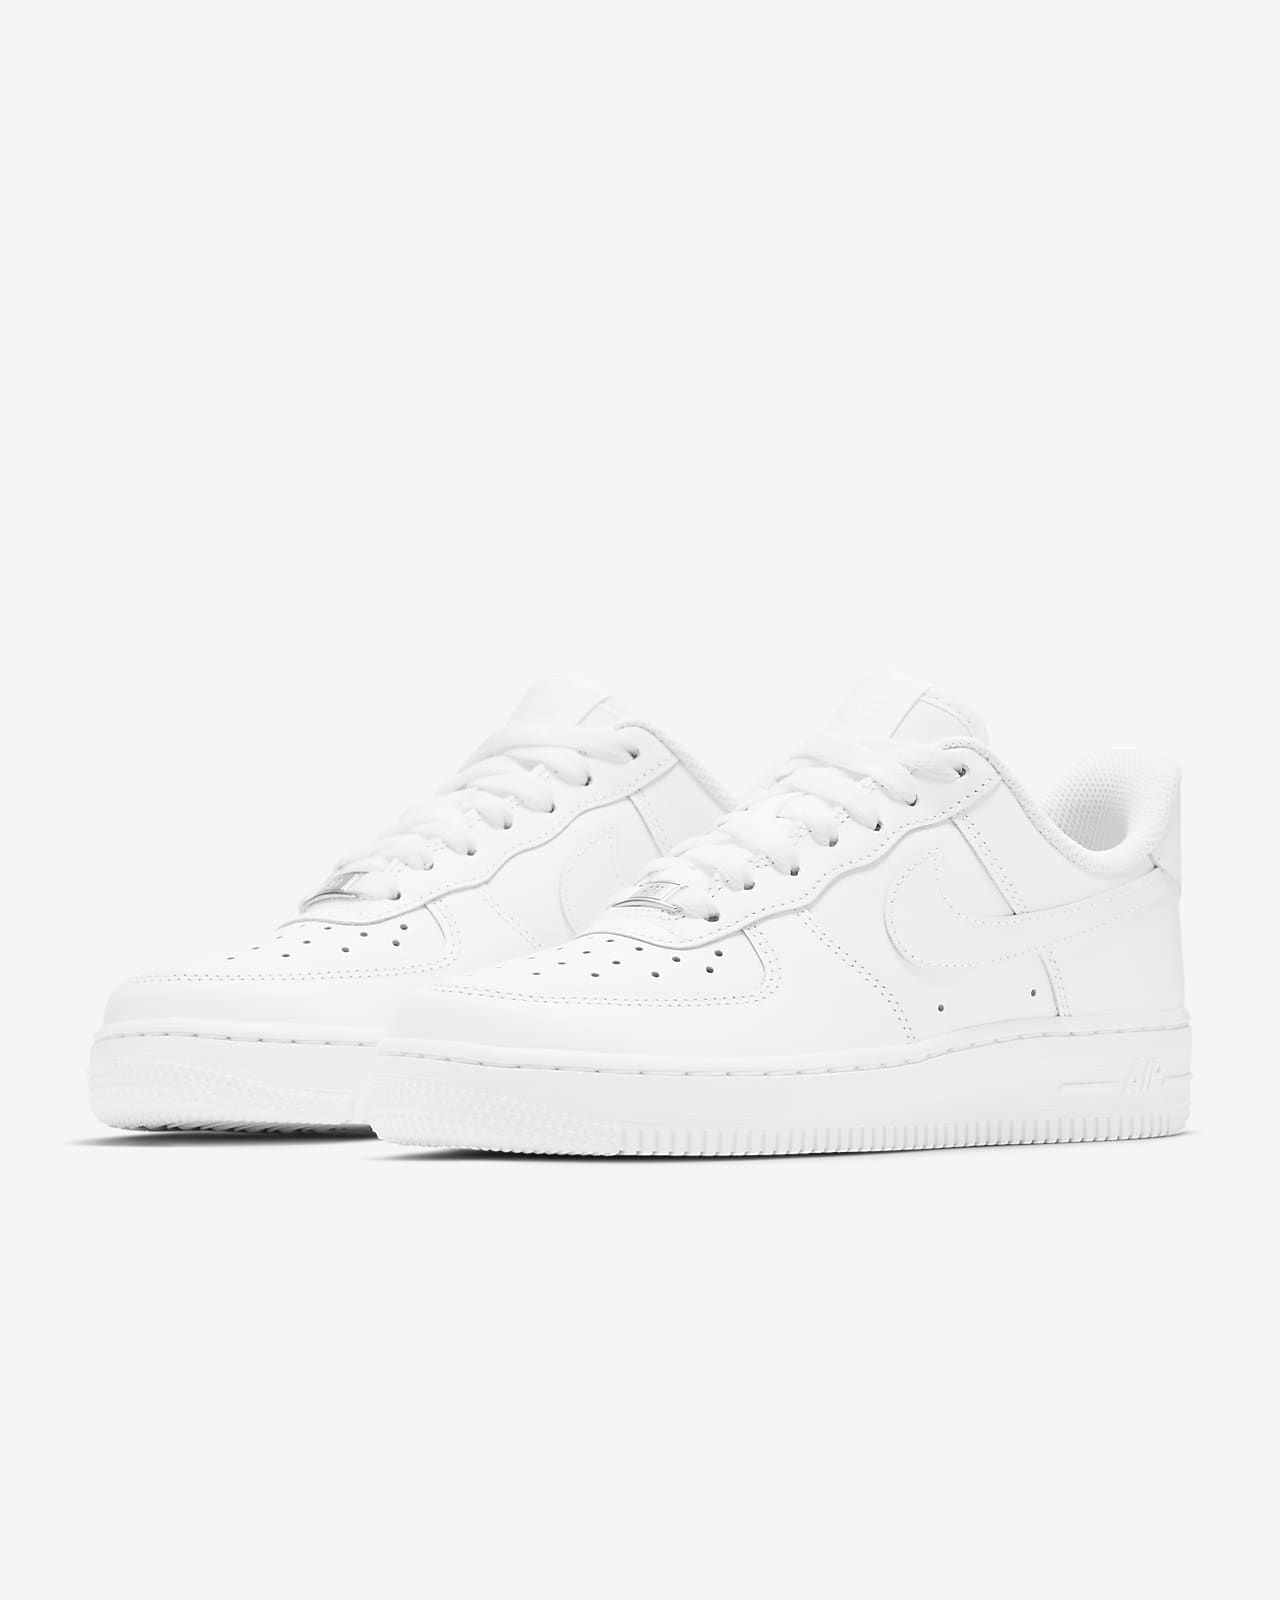 basquette femme nike air force 1